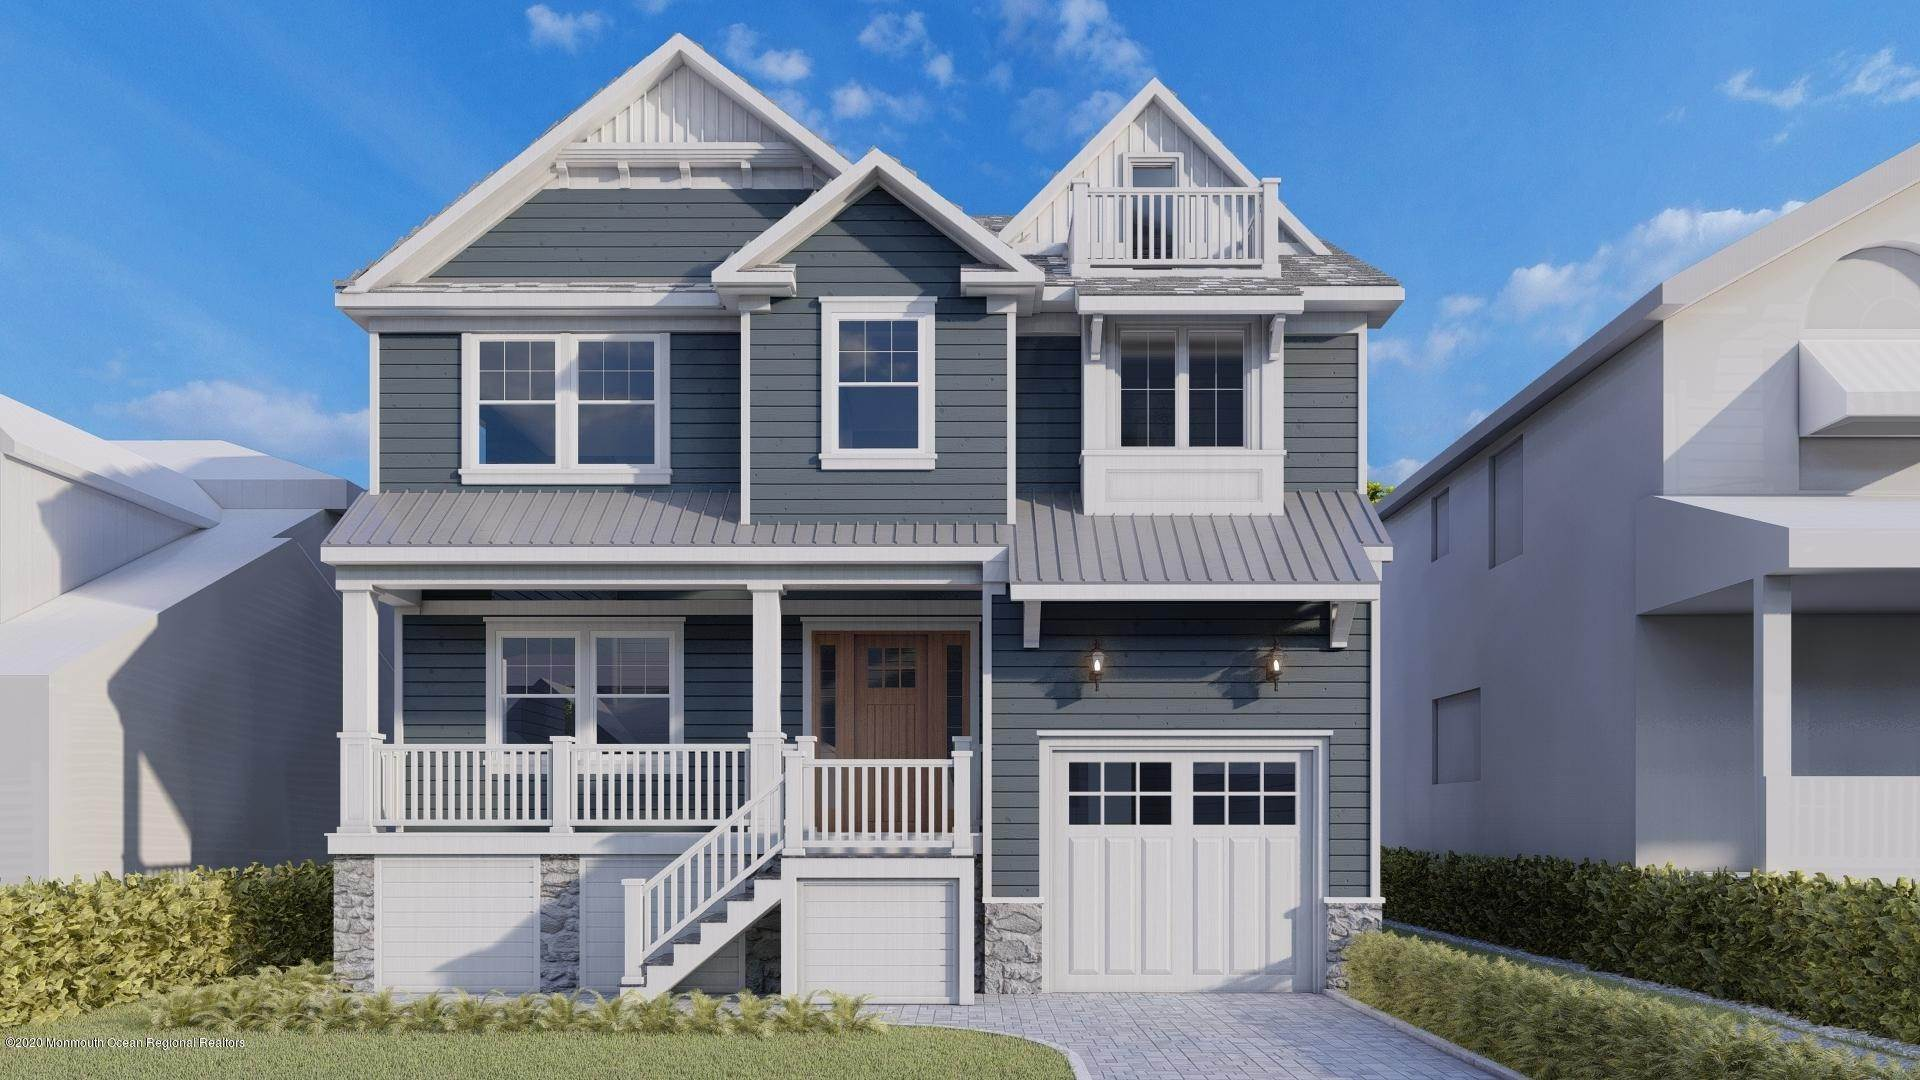 Single Family Homes for Sale at 205 Harvard Avenue Point Pleasant Beach, New Jersey 08742 United States